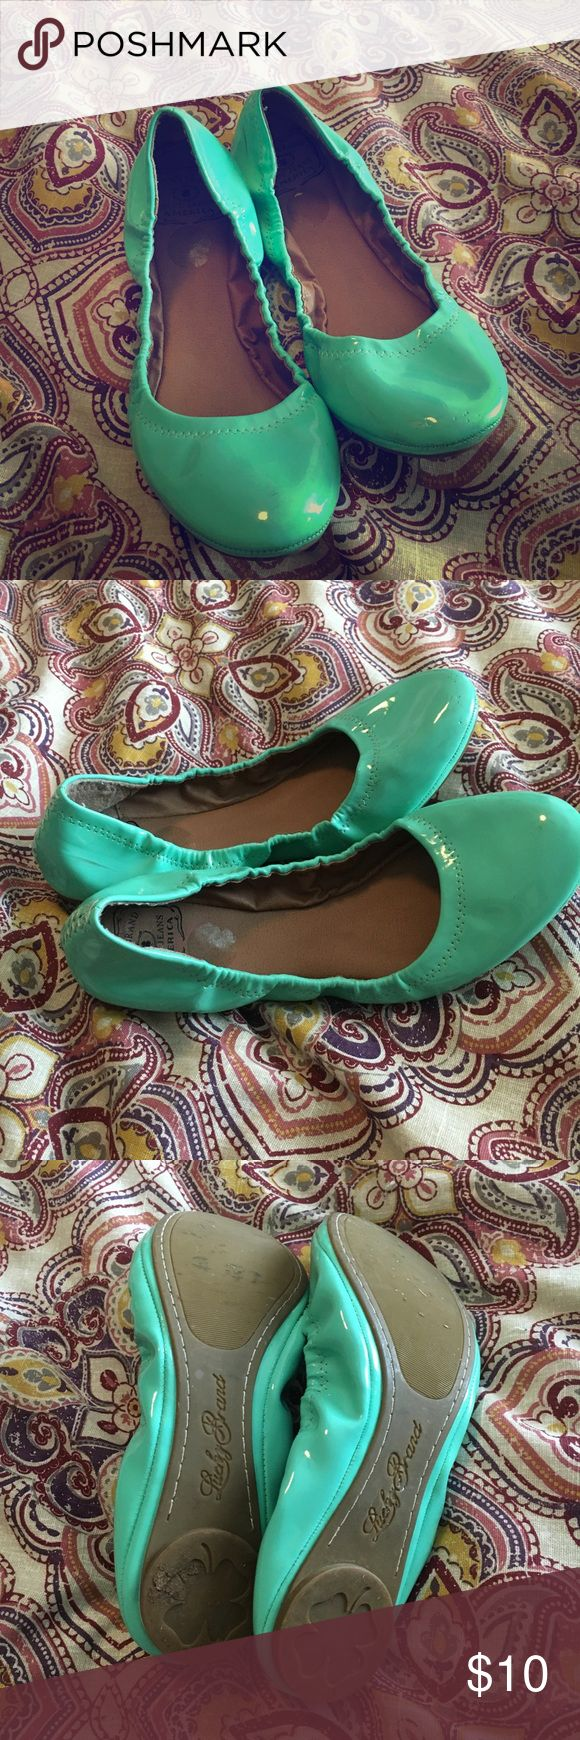 Lucky Brand Flats Size 8 Lucky Brand flats. Great condition! Message with questions! Lucky Brand Shoes Flats & Loafers